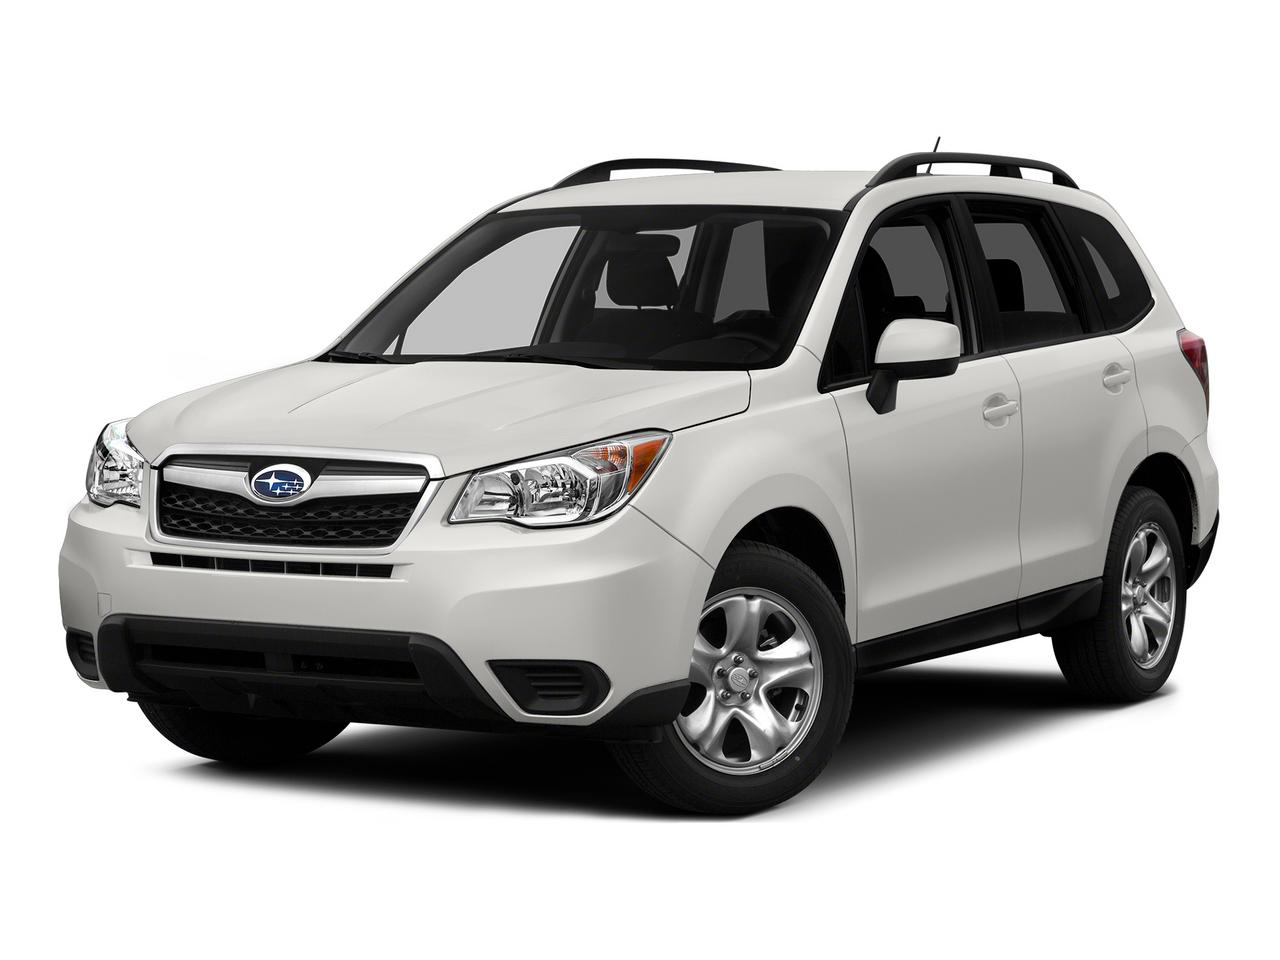 2015 Subaru Forester Vehicle Photo in Tucson, AZ 85712